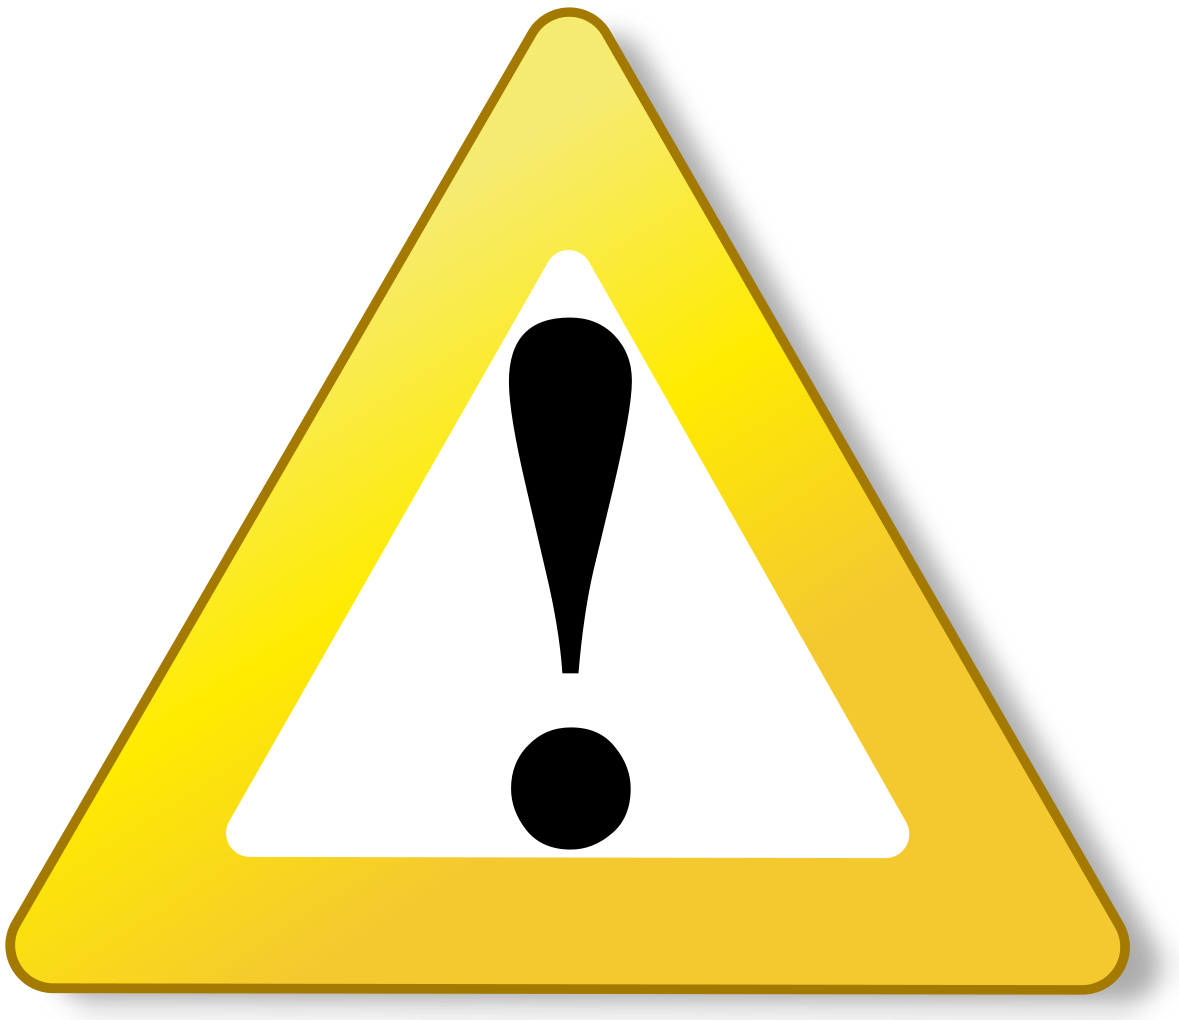 warning sign file ambox warning yellow picture #39213